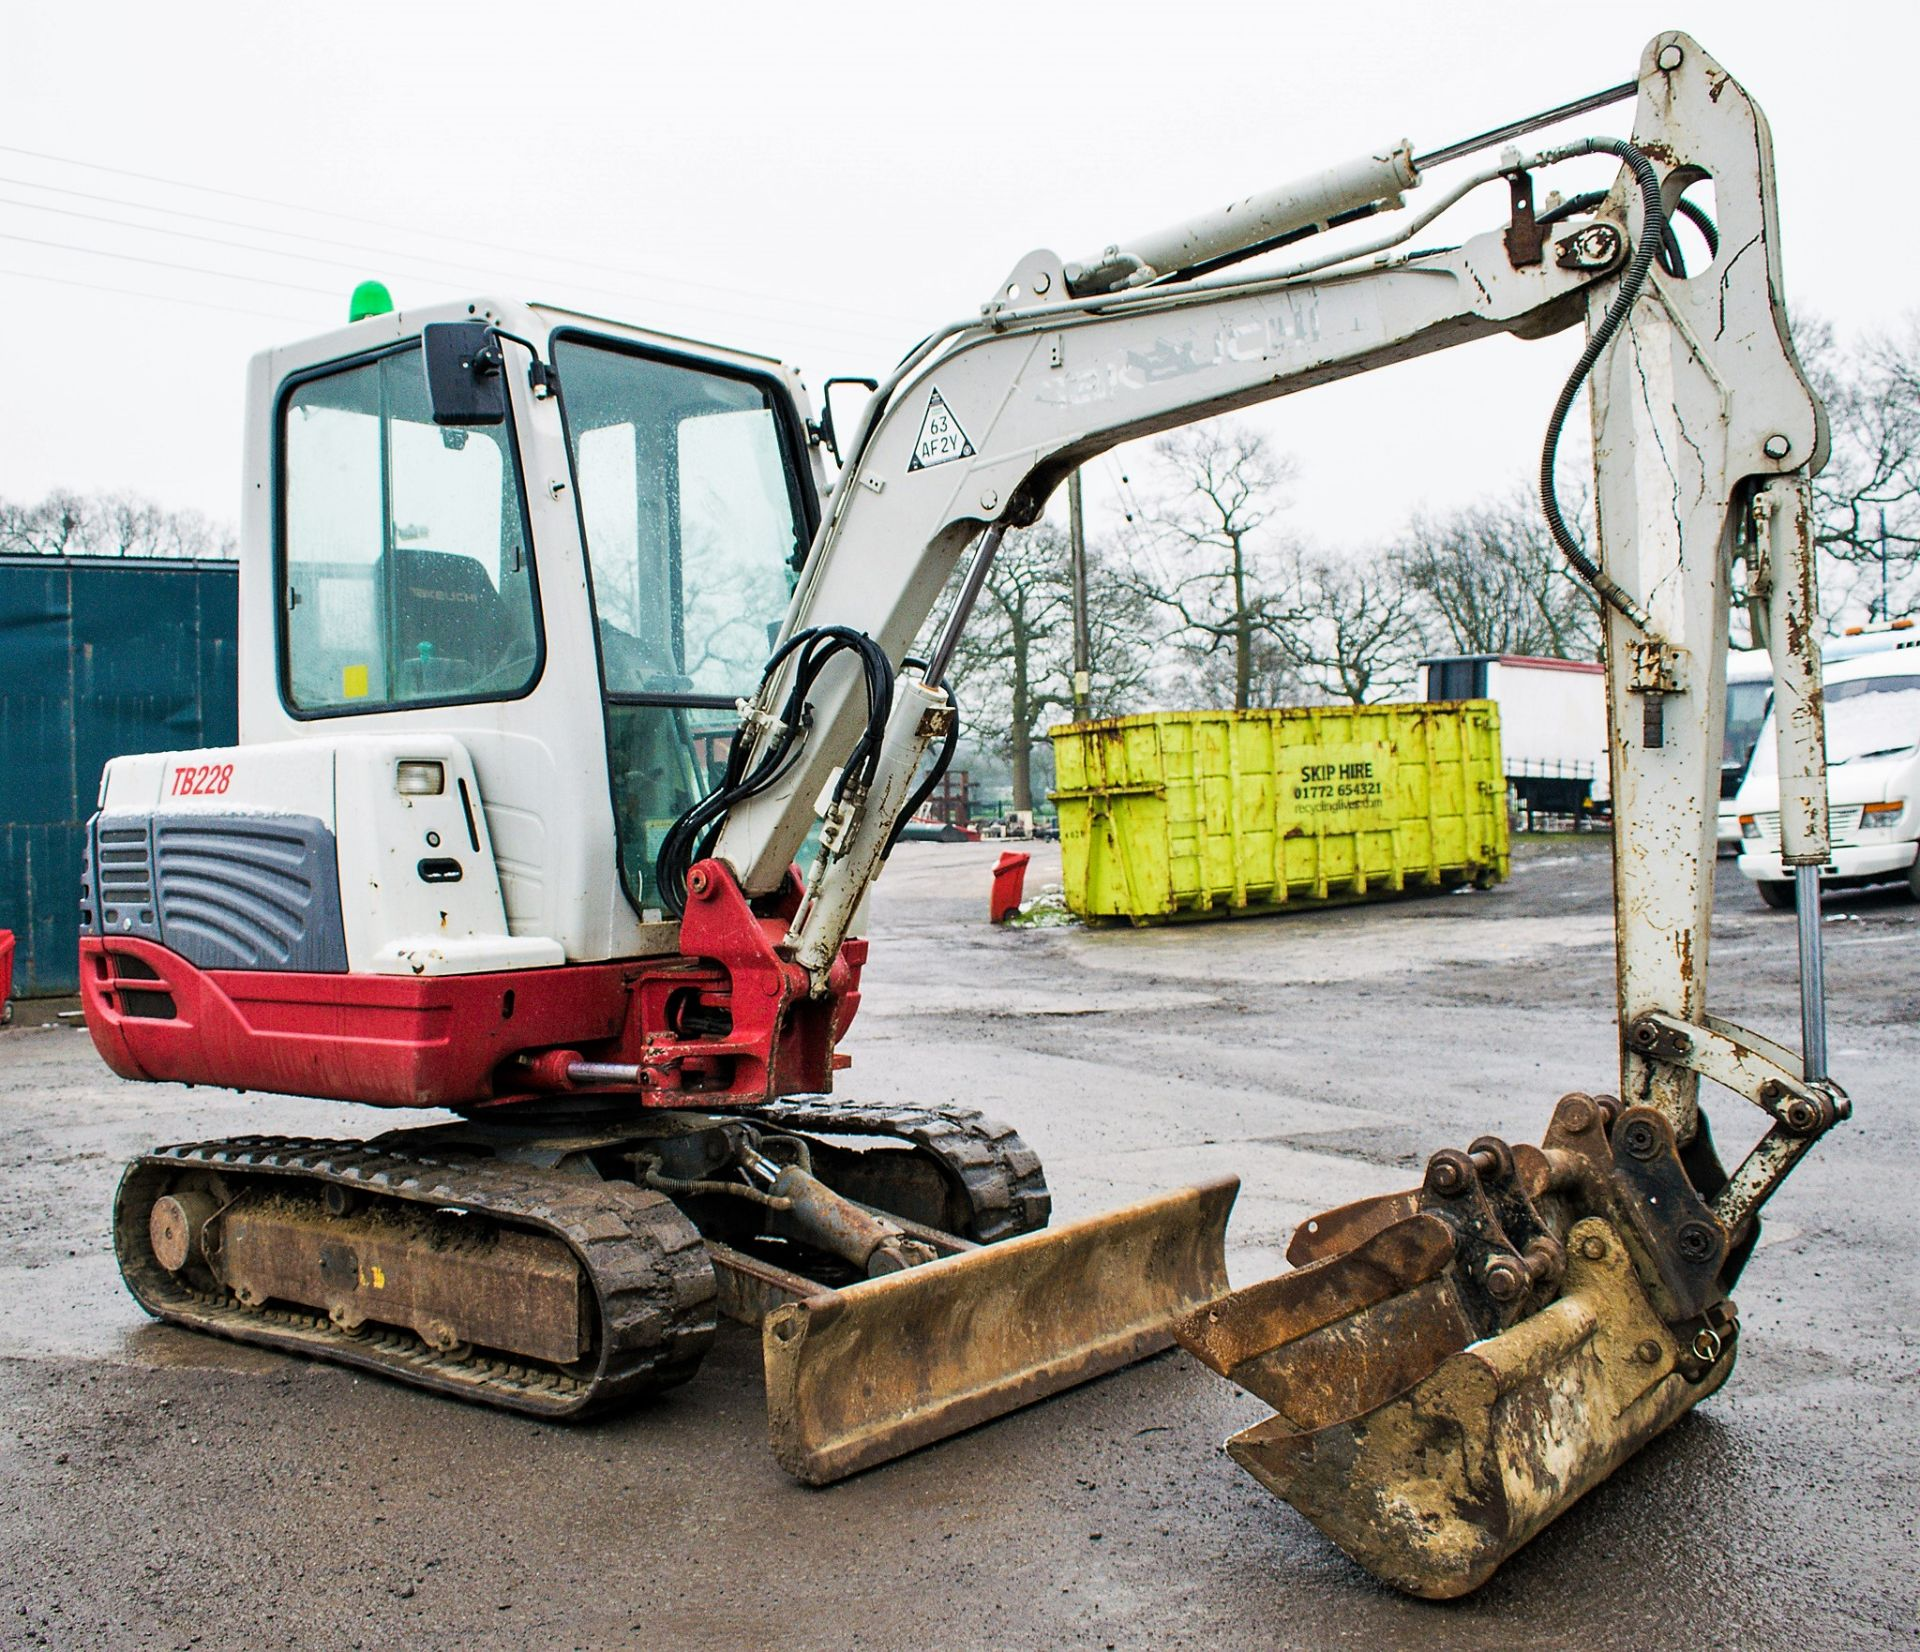 Lot 32 - Takeuchi TB228 2.8 tonne rubber tracked excavator Year: 2012 S/N: 122801774 Recorded Hours: 3748